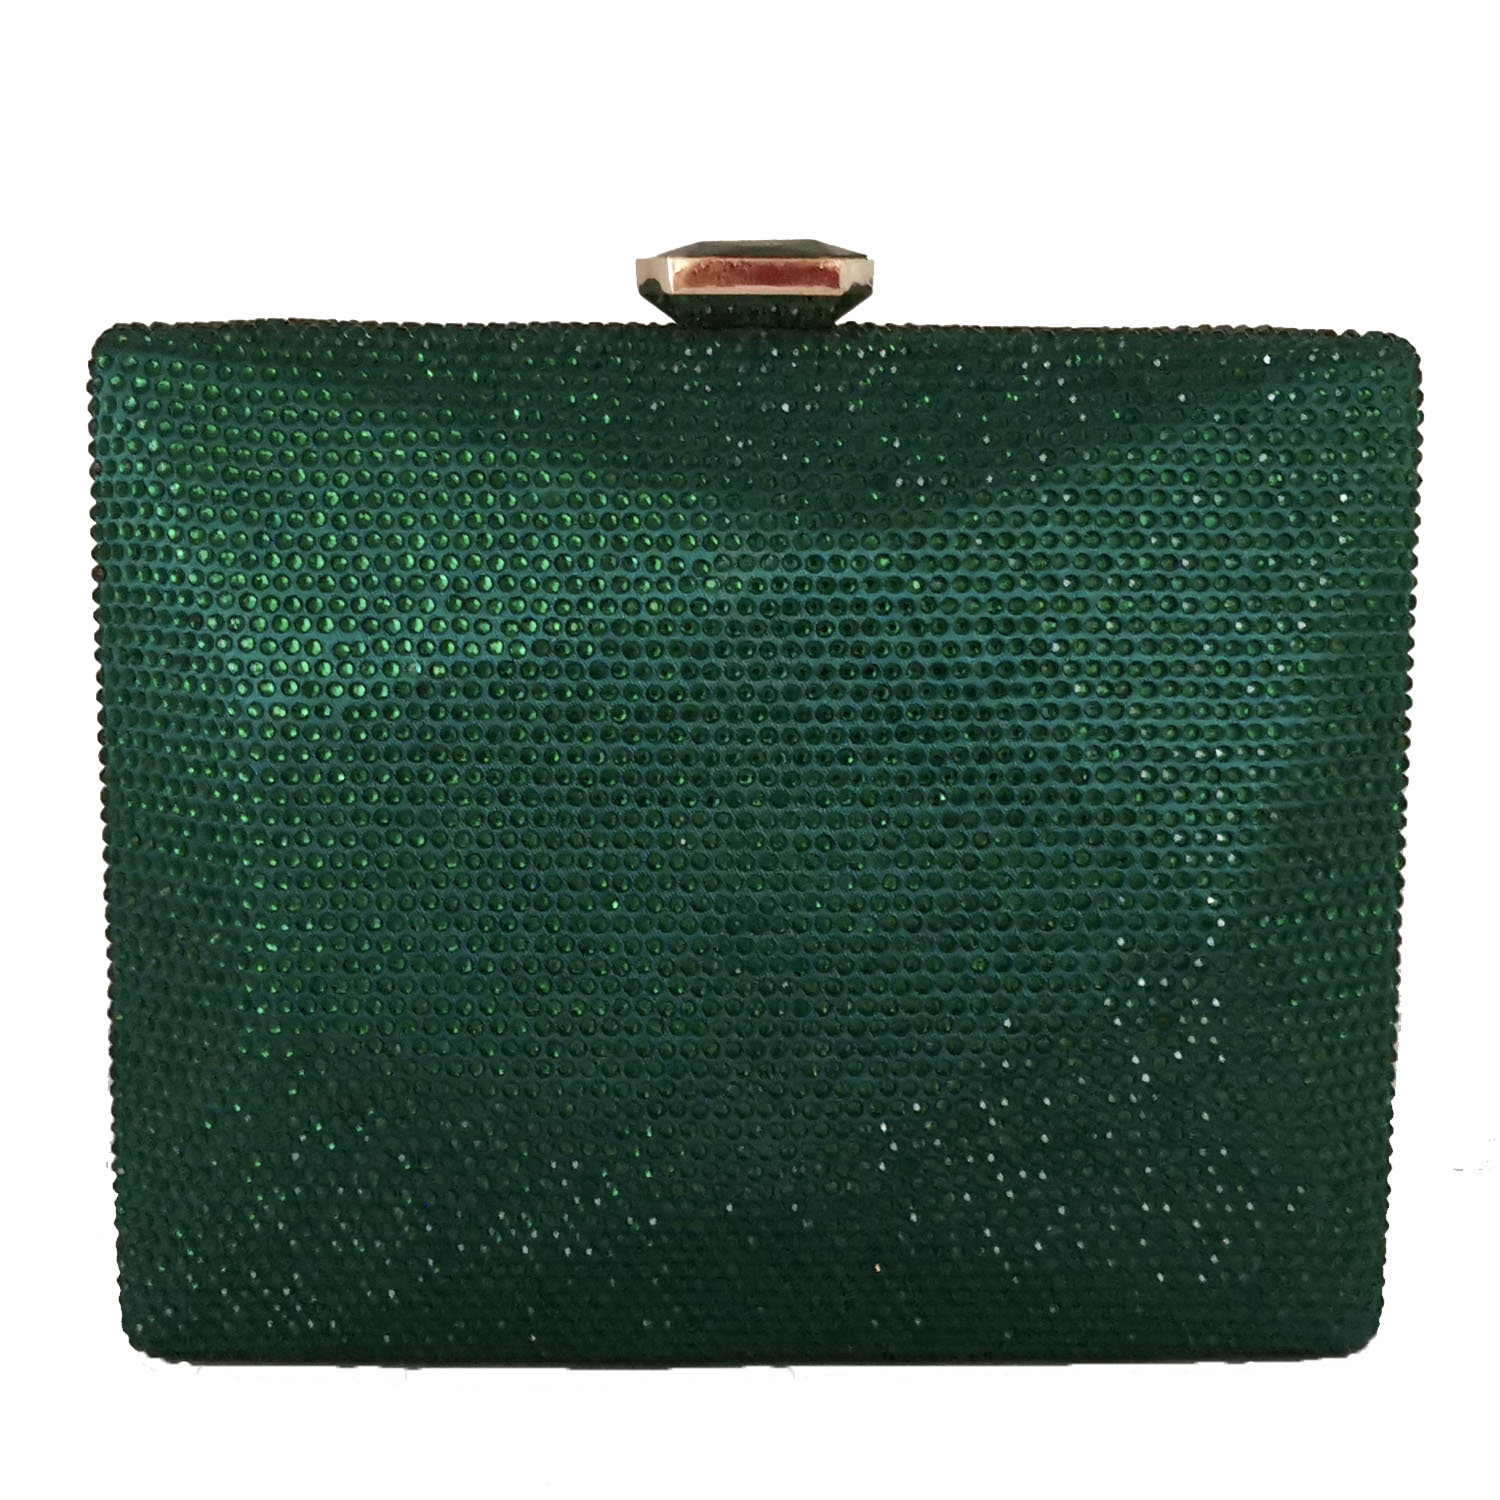 Boutique De FGG Elegant Green Crystal Women Box Clutch Evening Handbags Party Cocktail Rhinestones Purses Wedding Bag